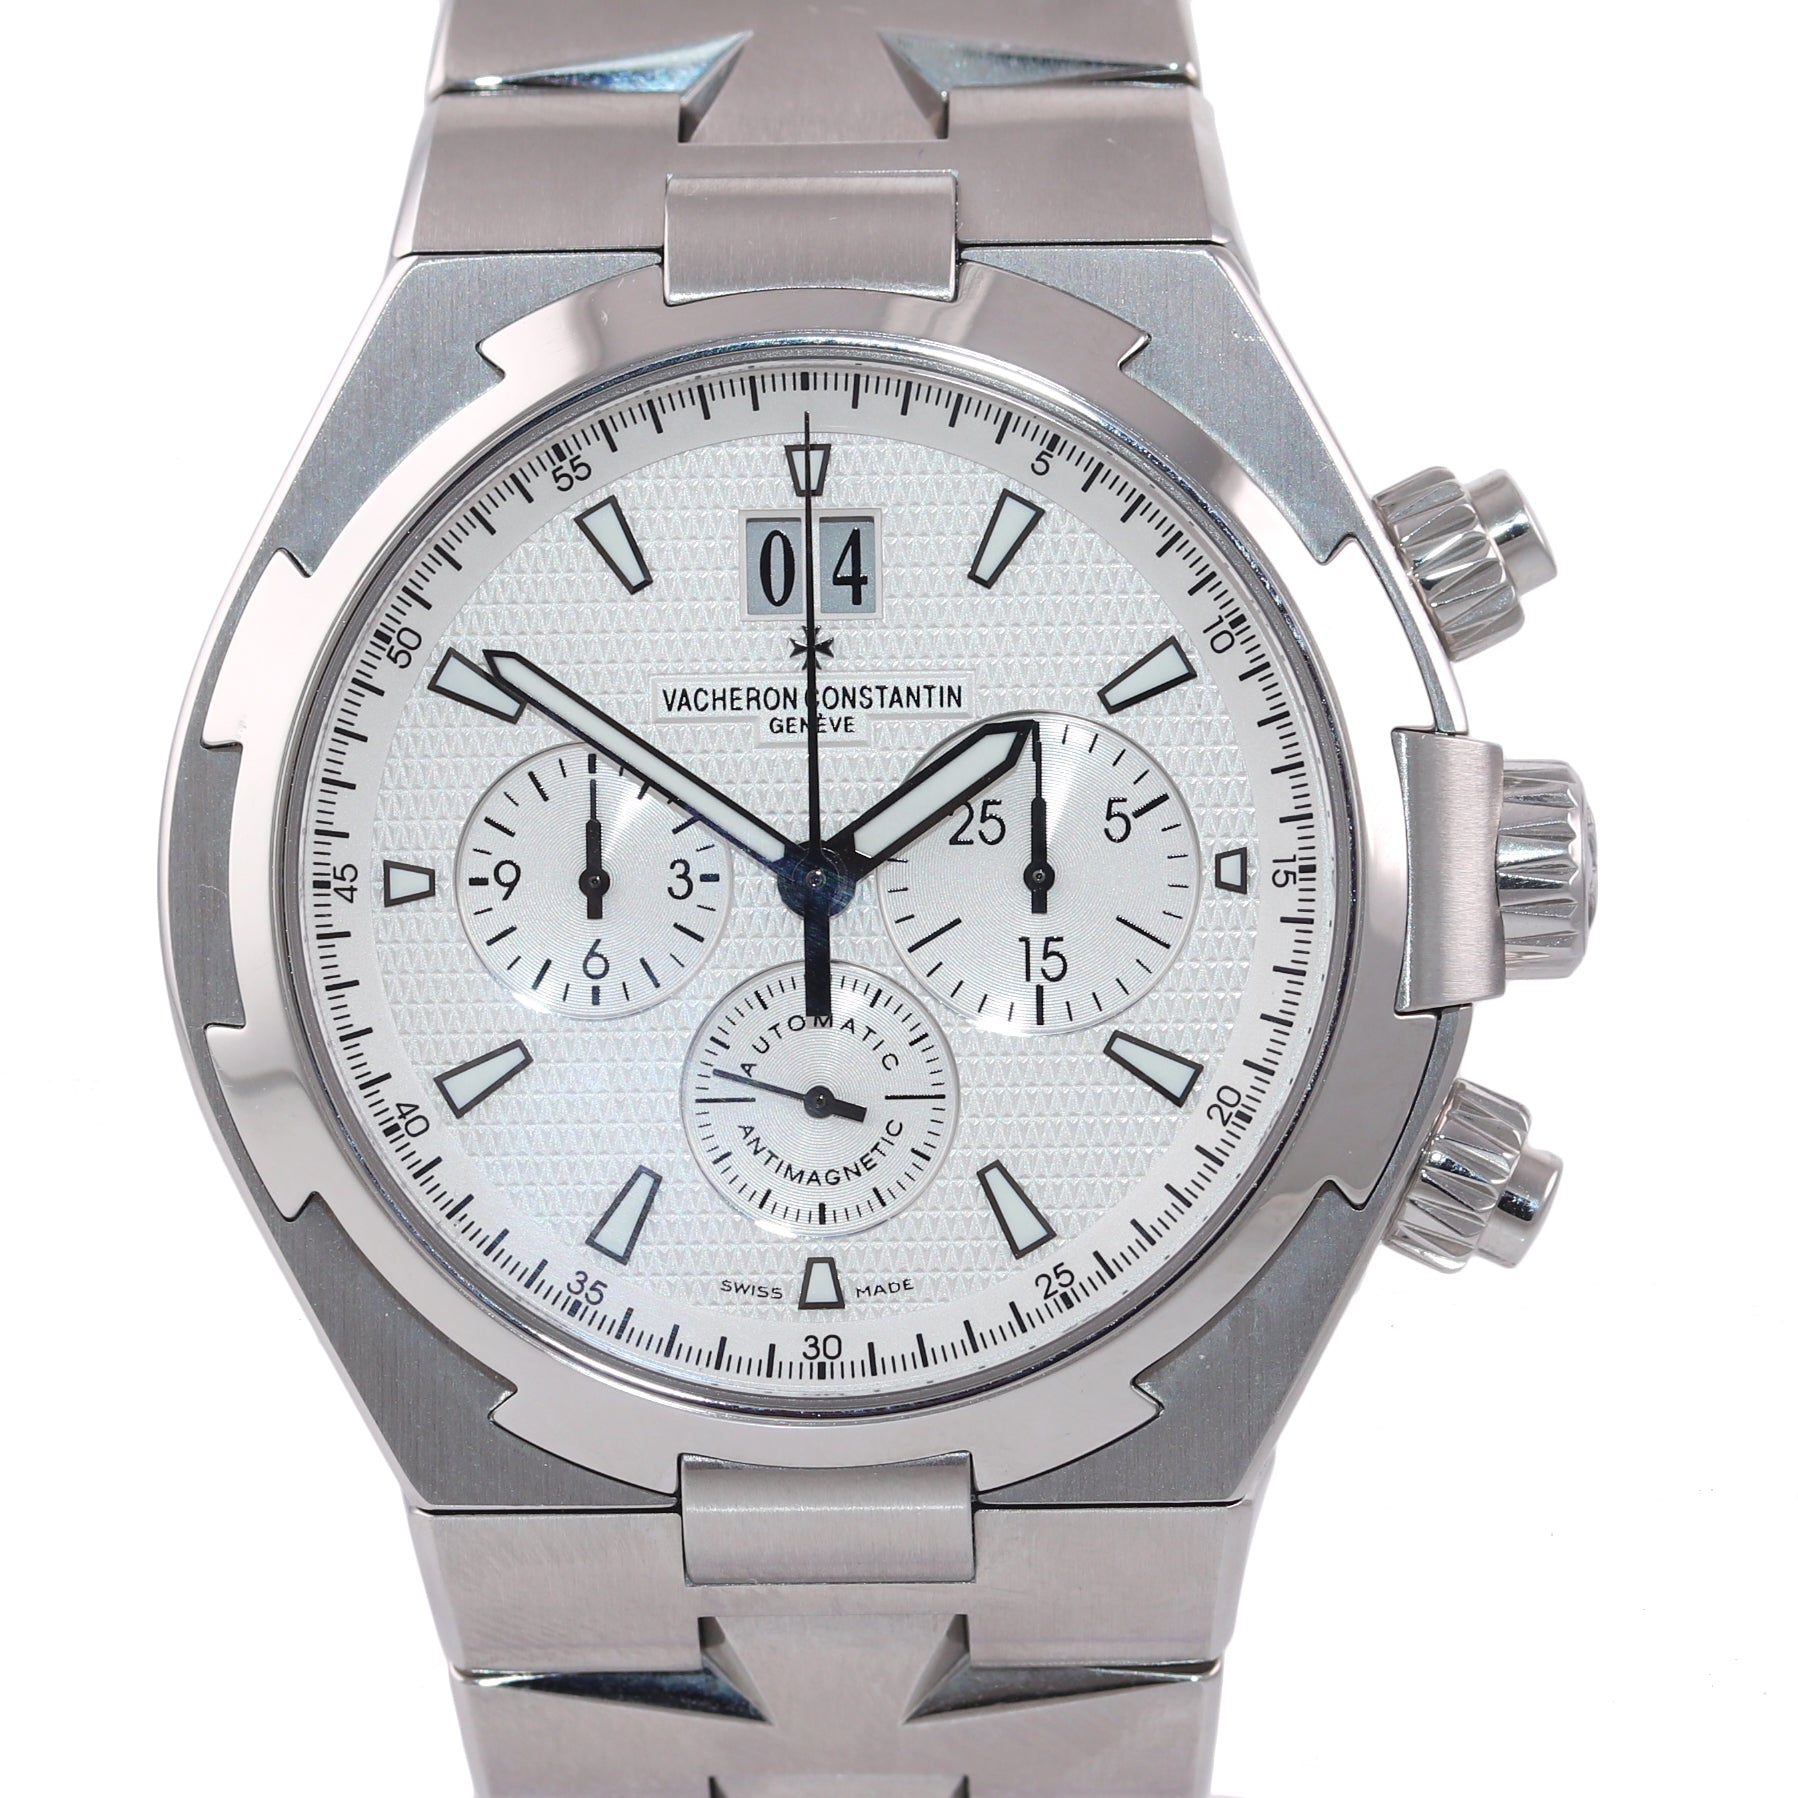 Vacheron Constantin Overseas 49150 42mm Stainless Steel Chronograph Date Watch